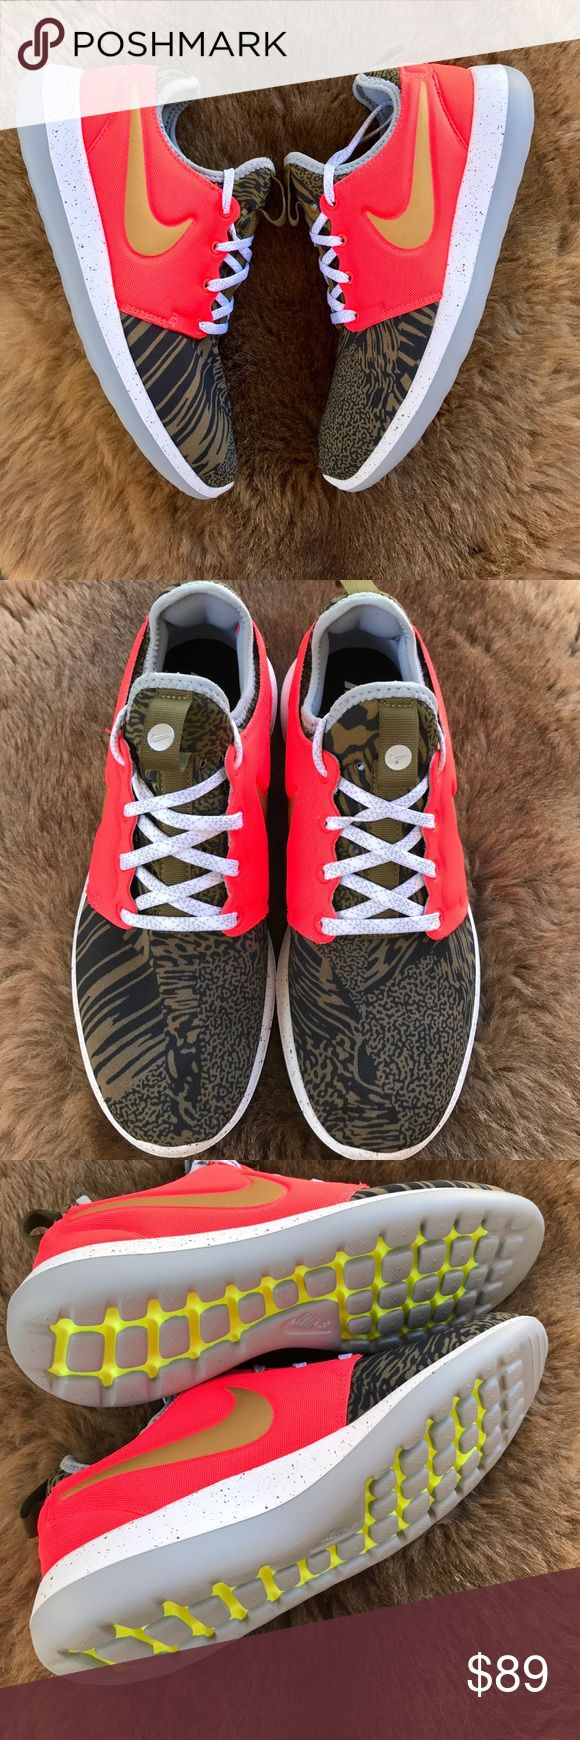 Net Nike ID gold swoosh Oreo Brand new no box Nike I'd custom made sneakers neon orange with gold swoosh price is firm,no trades please Nike Shoes Sneakers